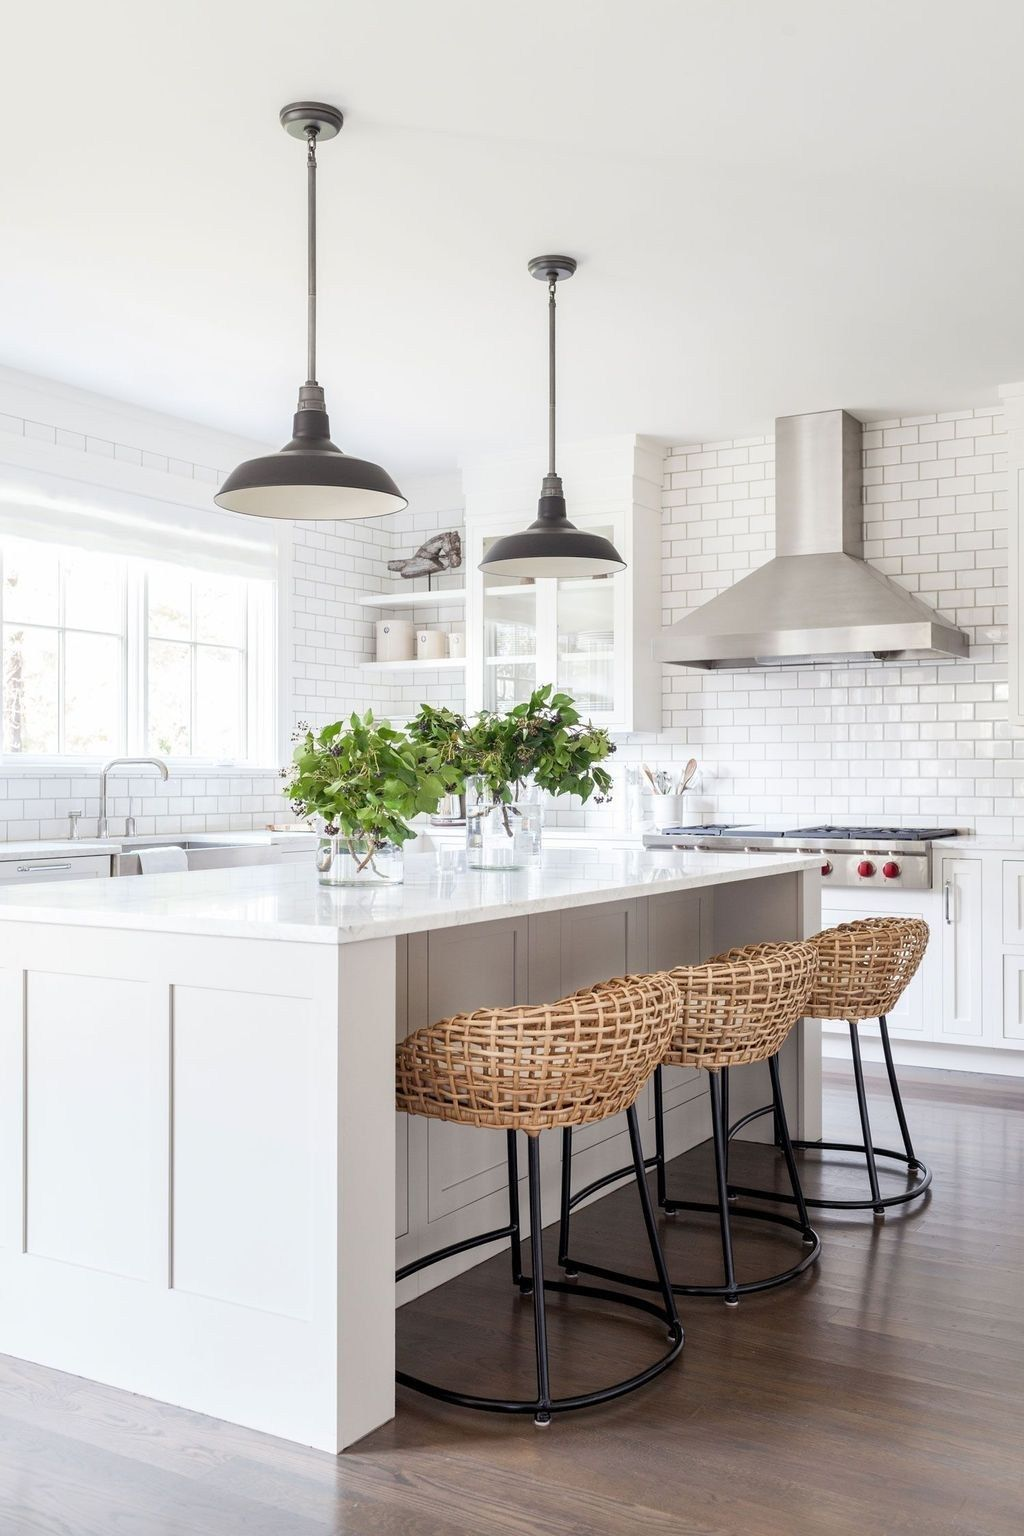 43 Attractive Kitchen Design Inspirations You Must See Kitchen